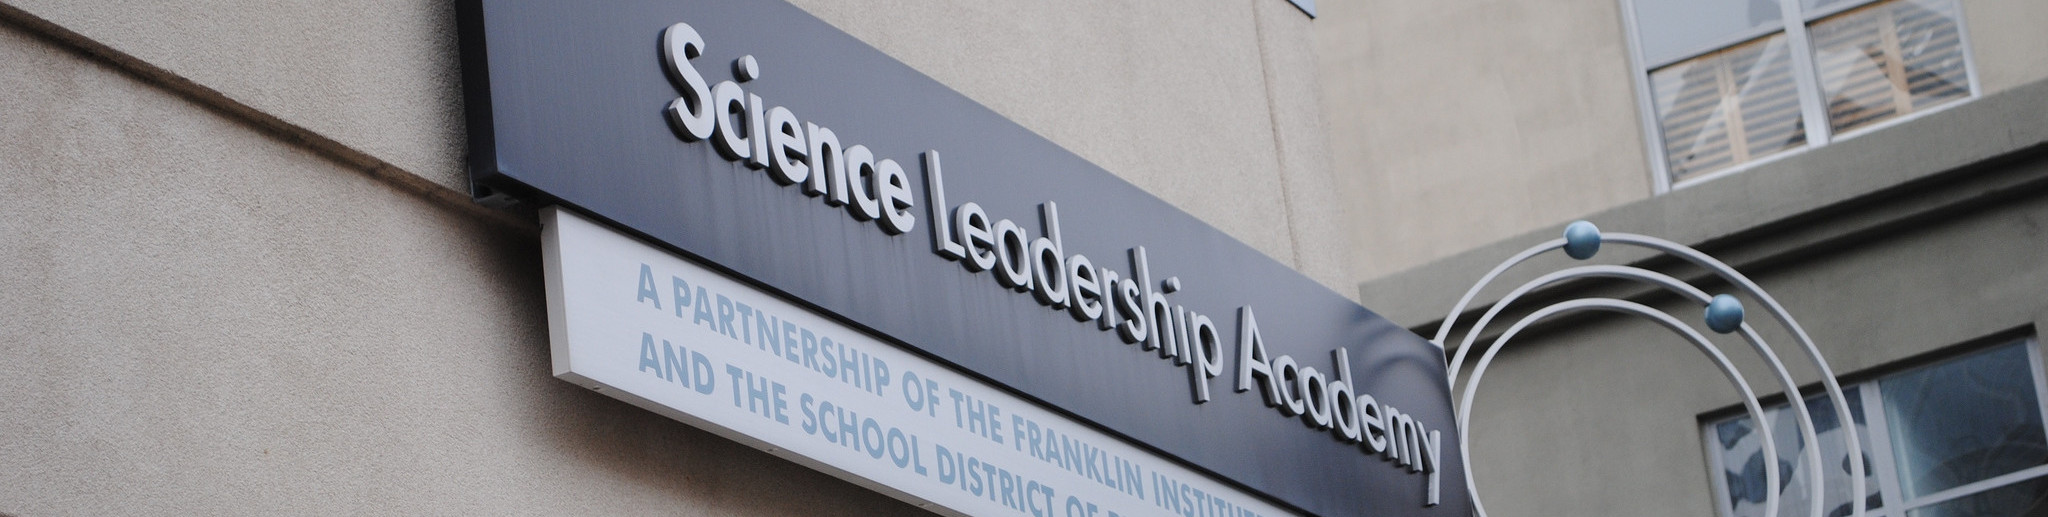 Science Leadership Academy by Diane Cordell